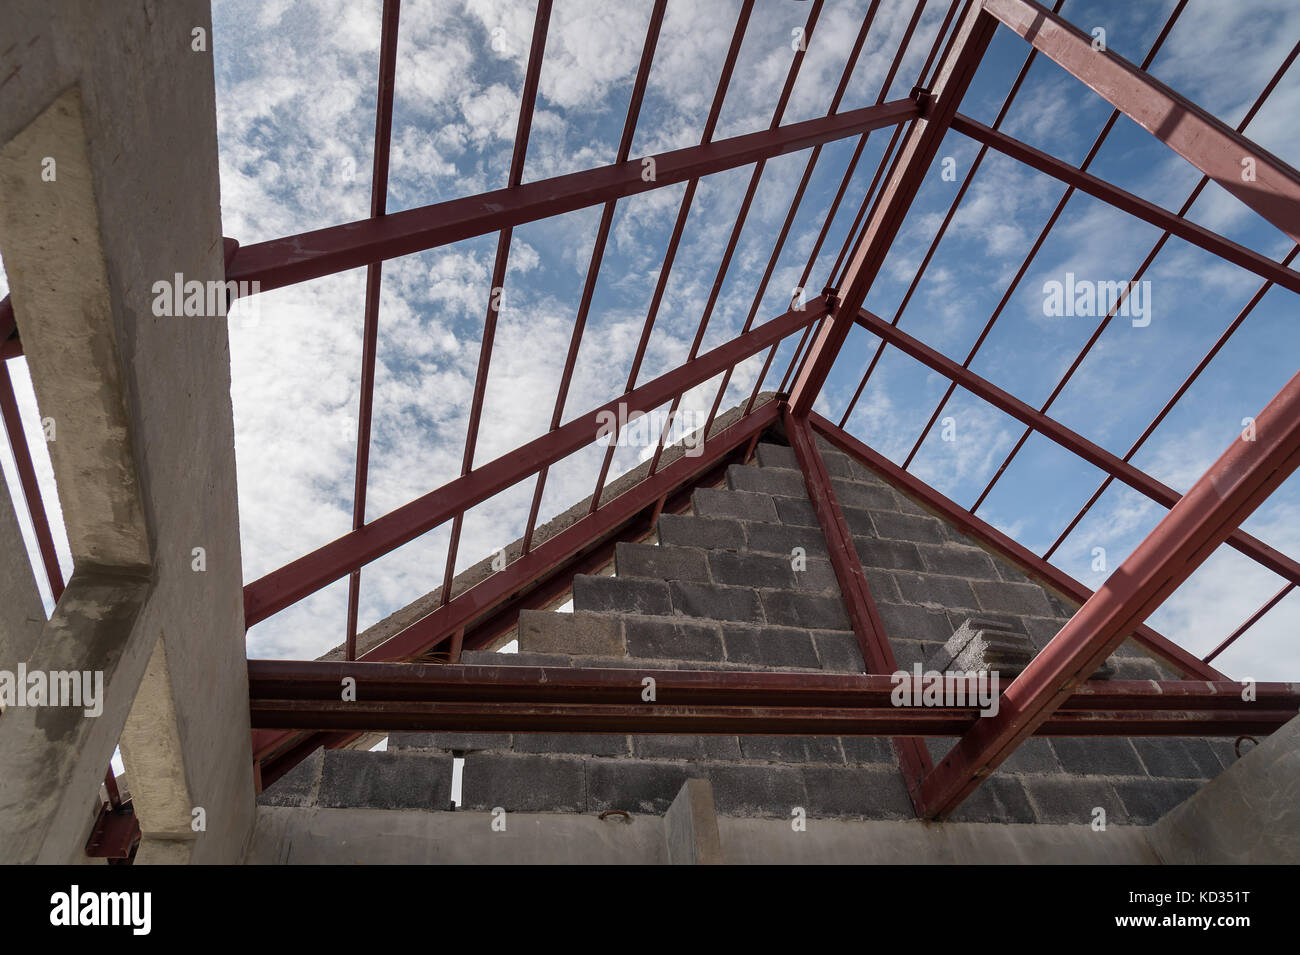 Structural Steel Roof Beam Of Building Residential Construction Stock Photo Alamy